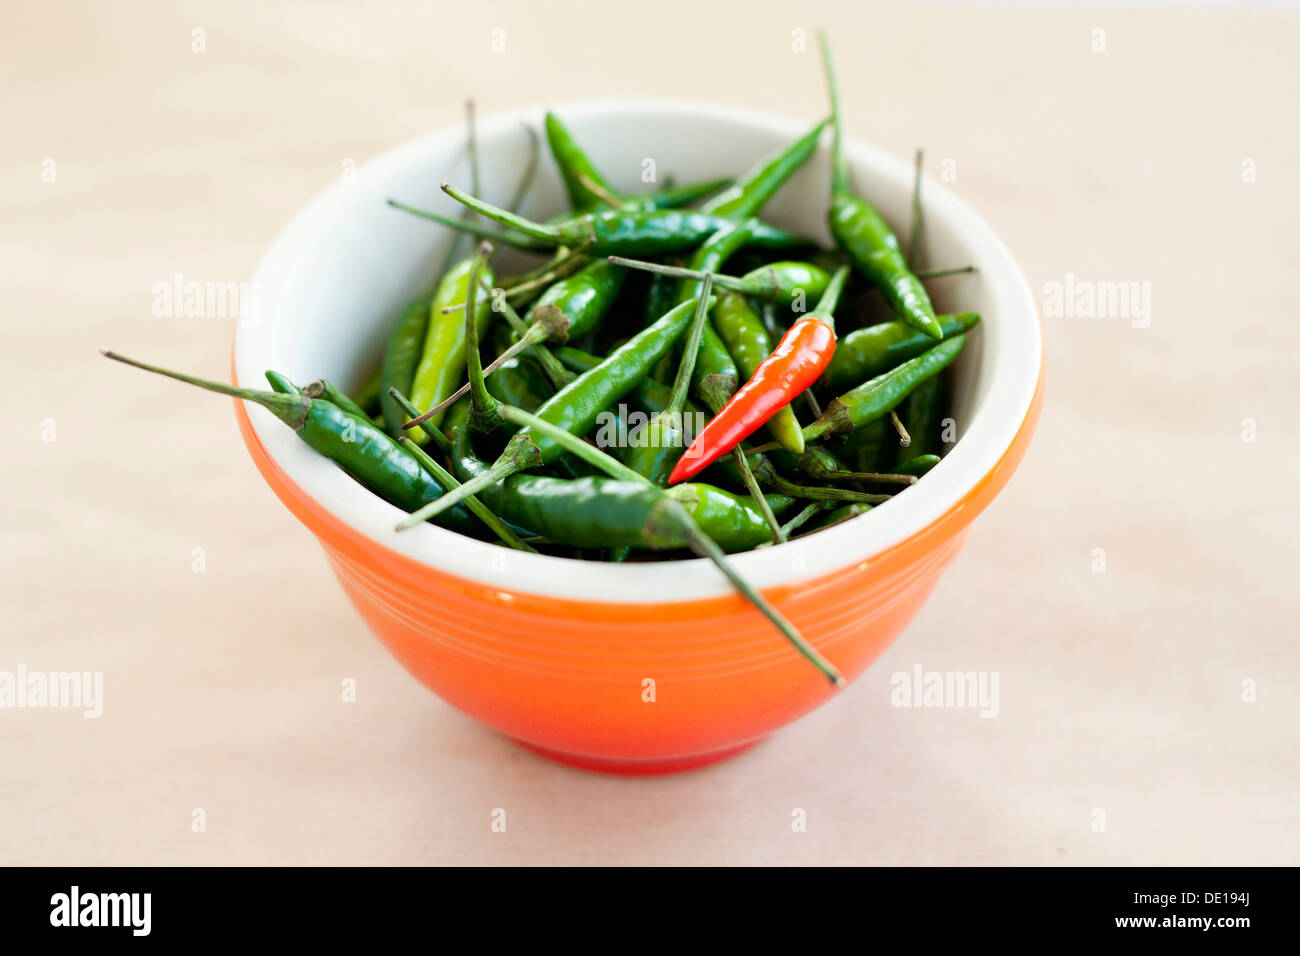 Bowl of Bird's eye chili peppers, green and red chillies, orange bowl. Neutral background. - Stock Image